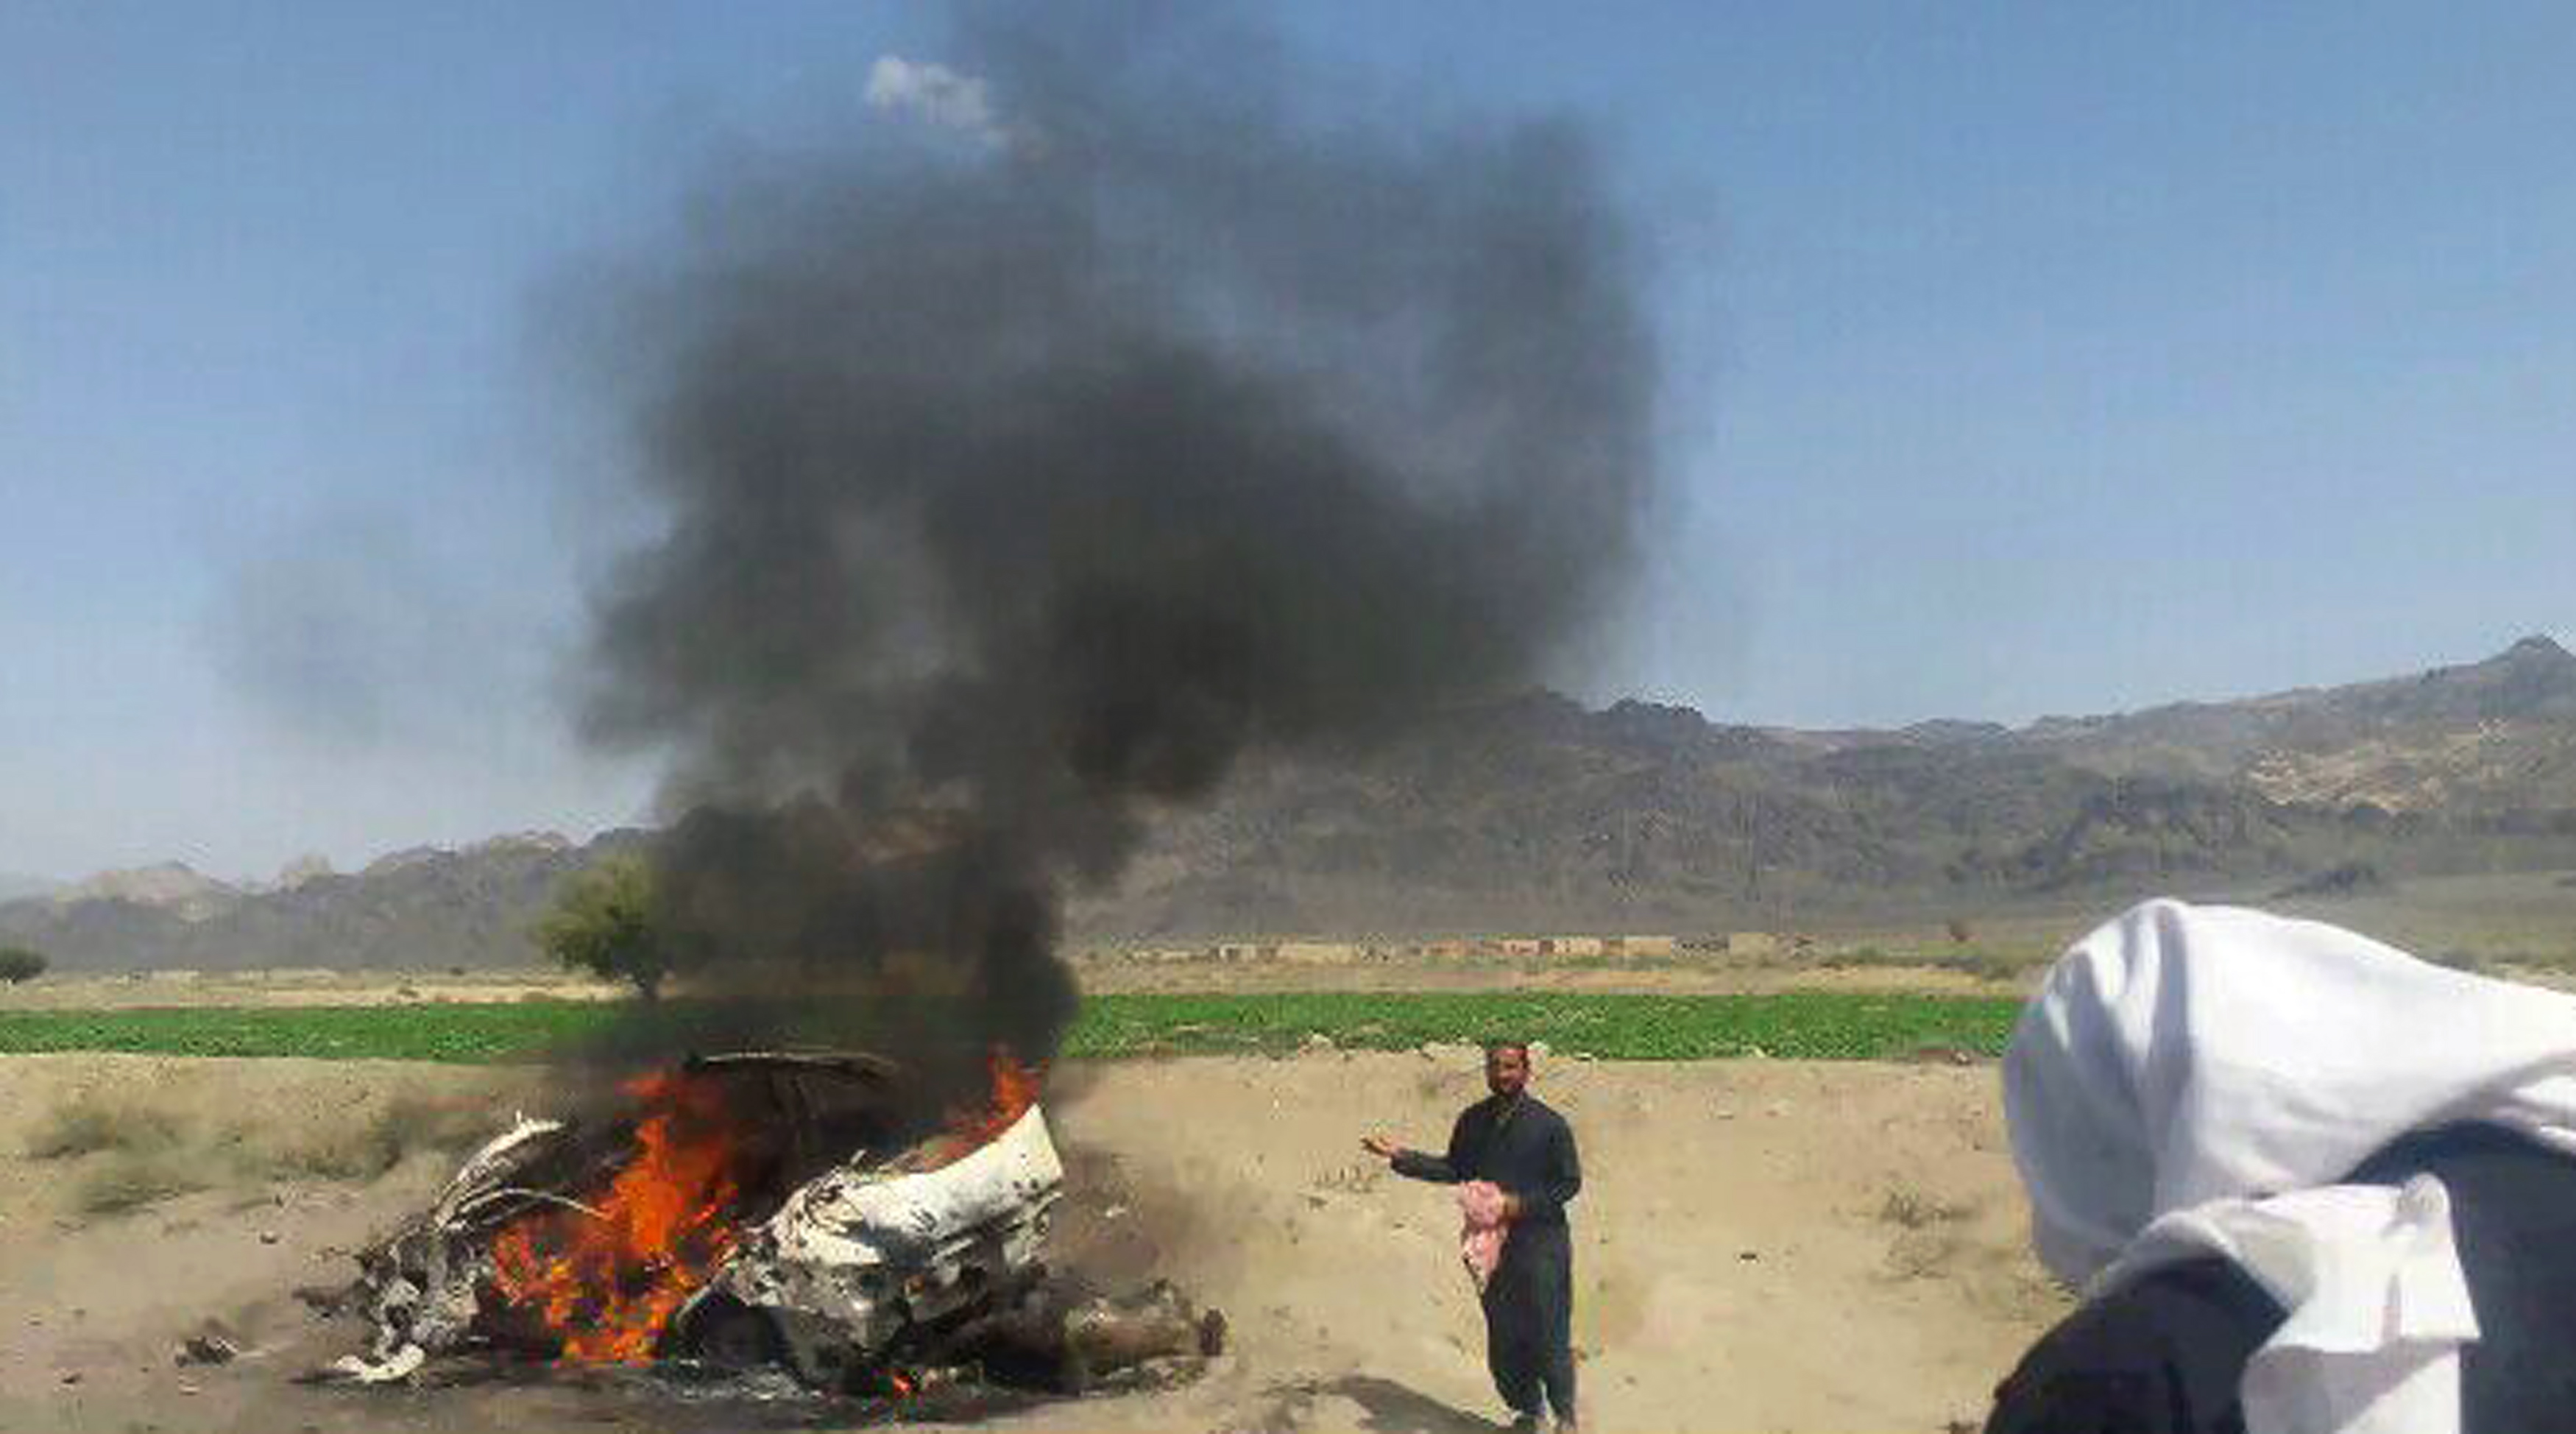 The site of a drone strike believed to have killed Afghan Taliban leader Mullah Akhtar in southwest Pakistan.